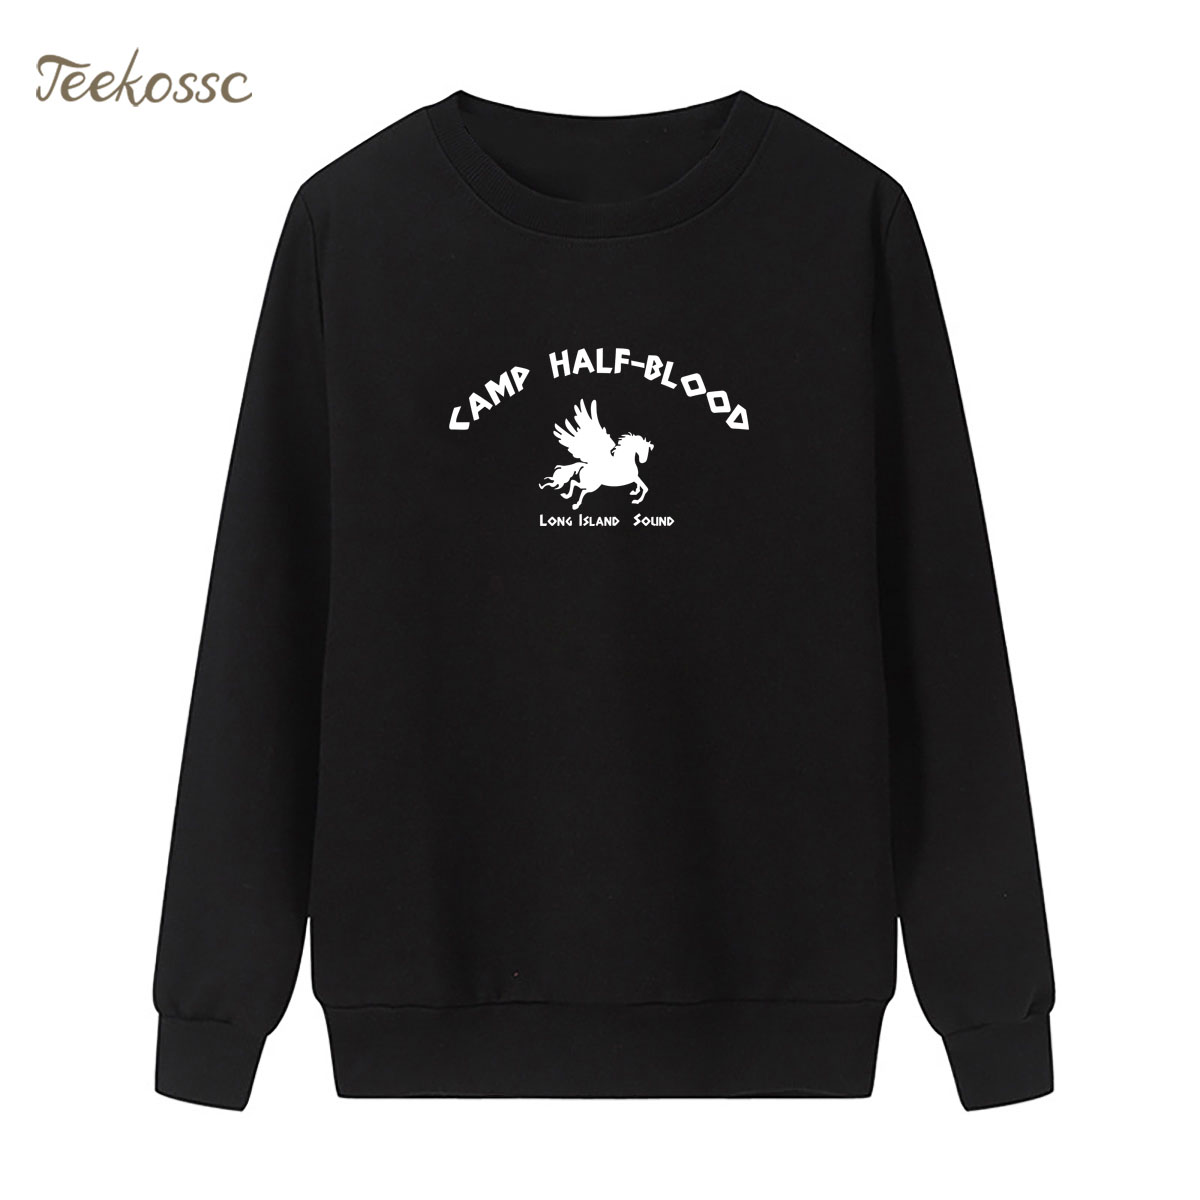 Camp Half Blood Demigods Sweatshirt Print Long Island Sound Hoodie Winter Autumn Women Lasdies Pullover Loose Fleece Streetwear